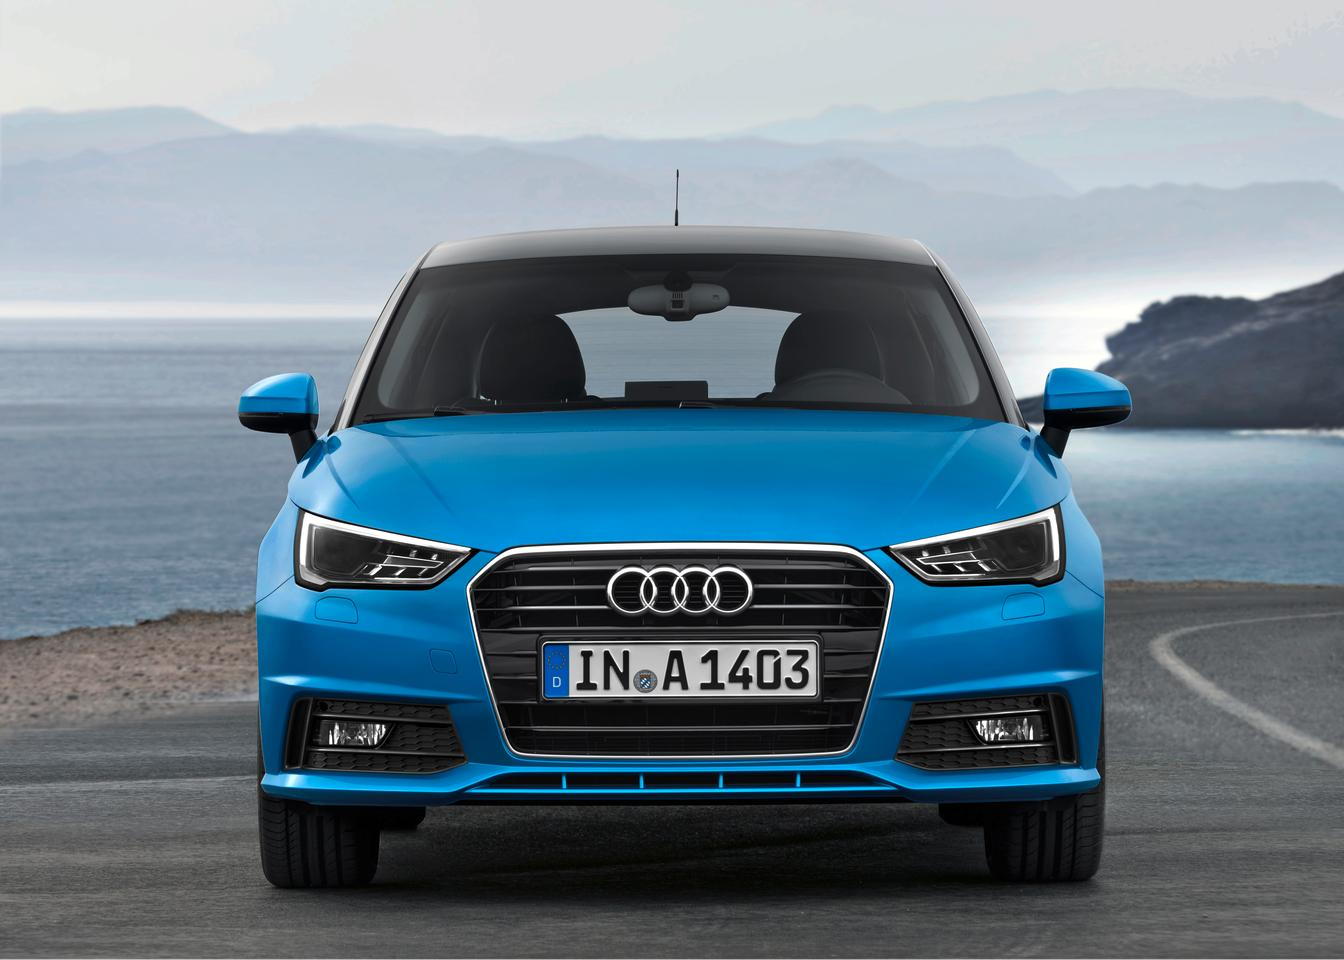 Audi is offering a raft of customization options for the new A1